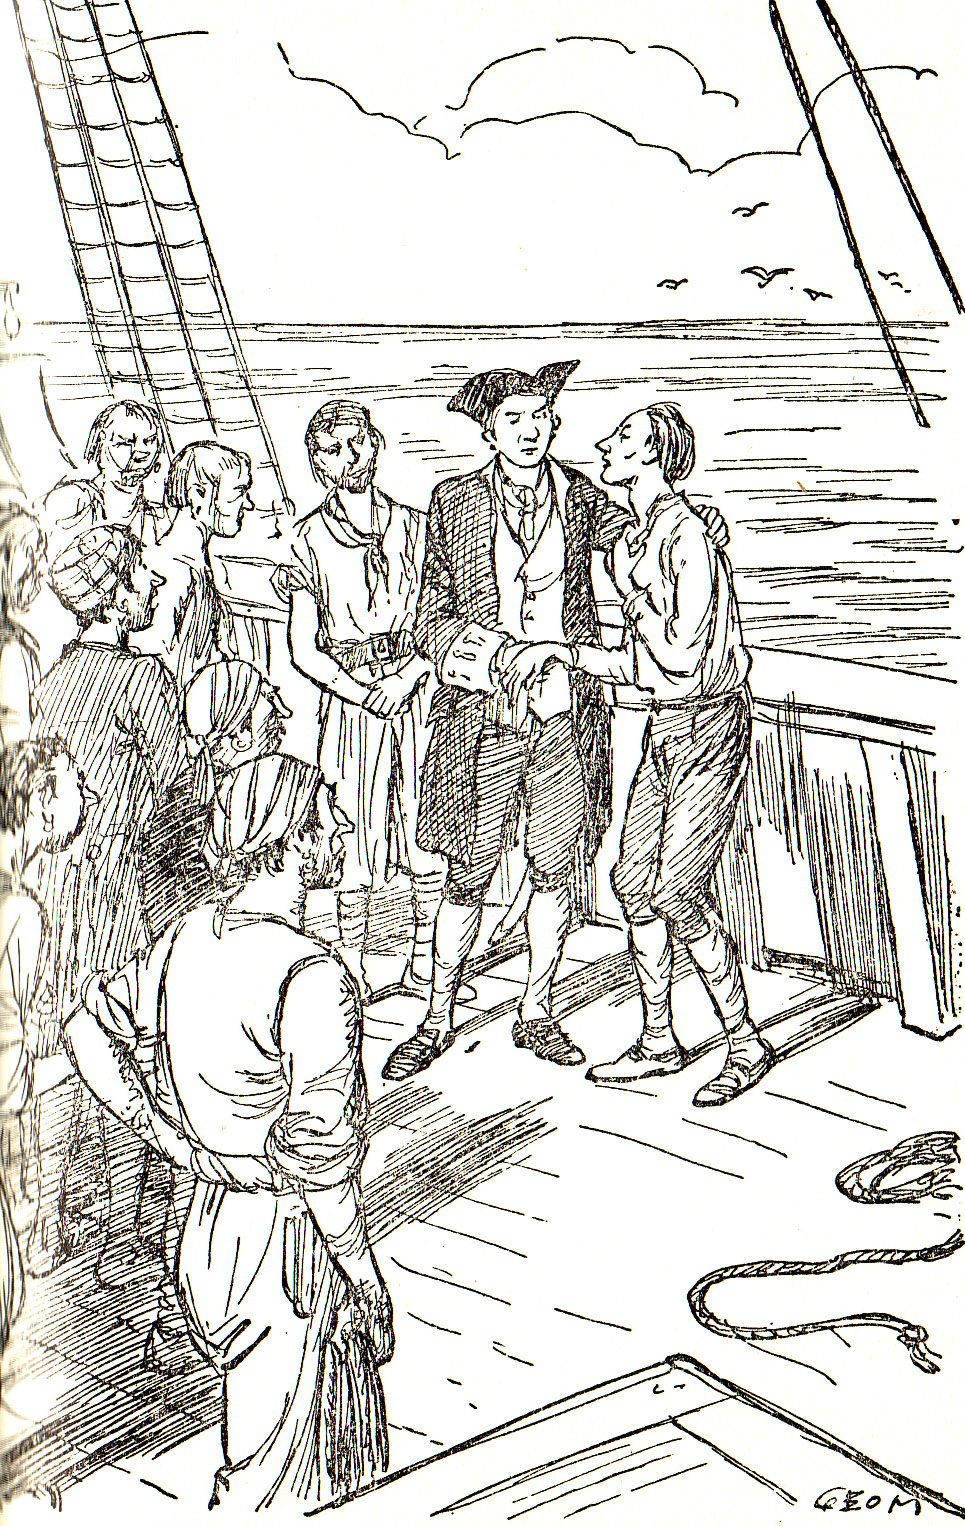 From Chapter 8 - A Voyage To Brobdingnag (Gulliver's Travels) illustrated by George Morrow